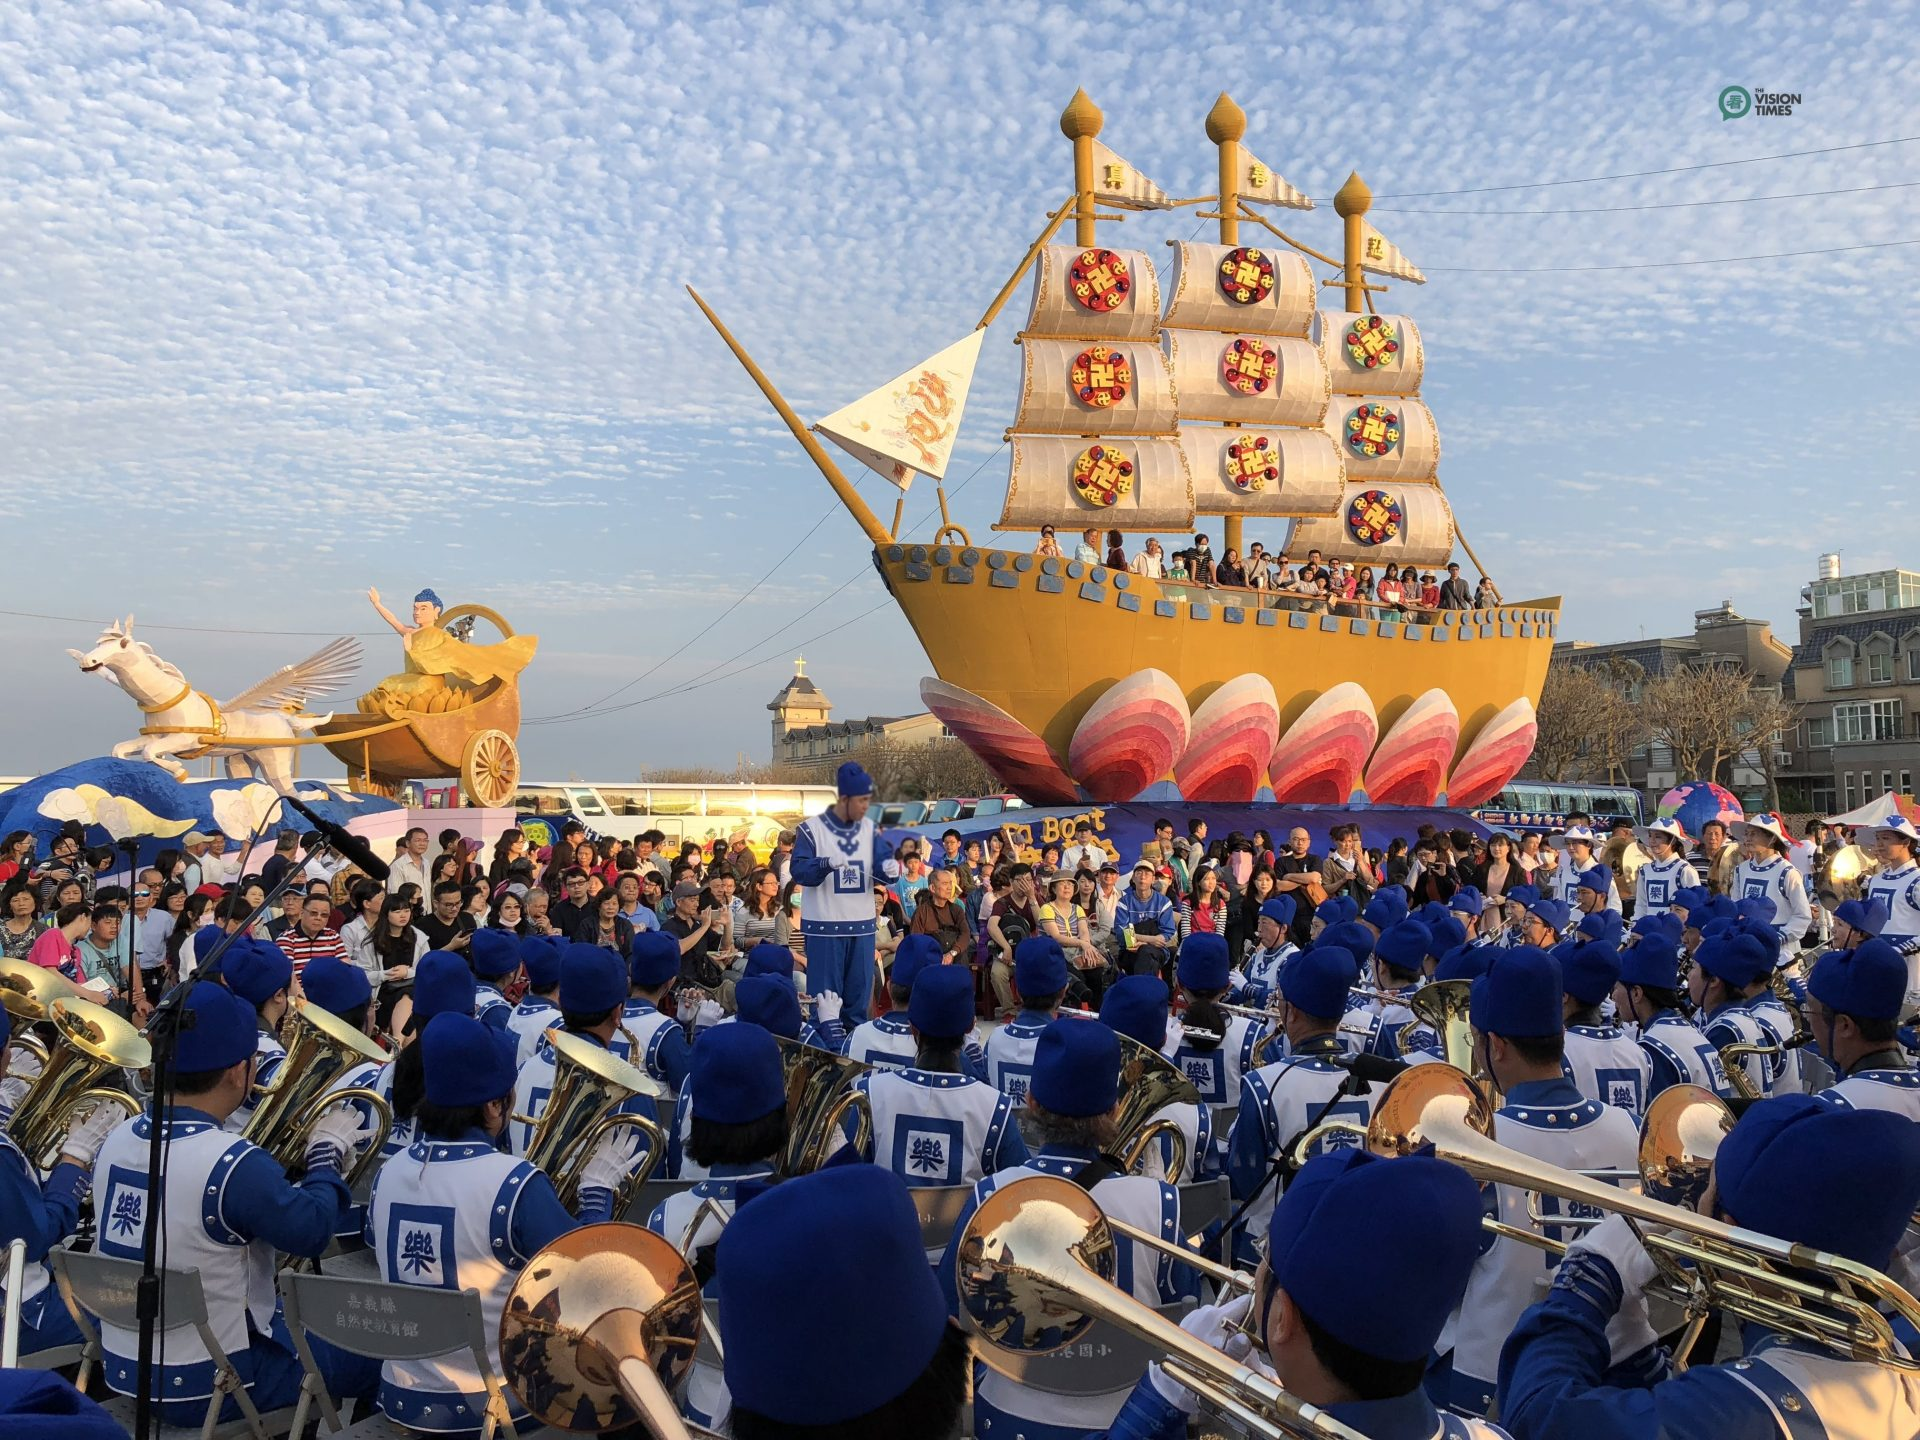 The grand Fa Boat provided by the Taiwan Falun Dafa Association is one of the most popular lanterns at the 2018 Taiwan Lantern Festival. (Image: Billy Shyu / Vision Times)